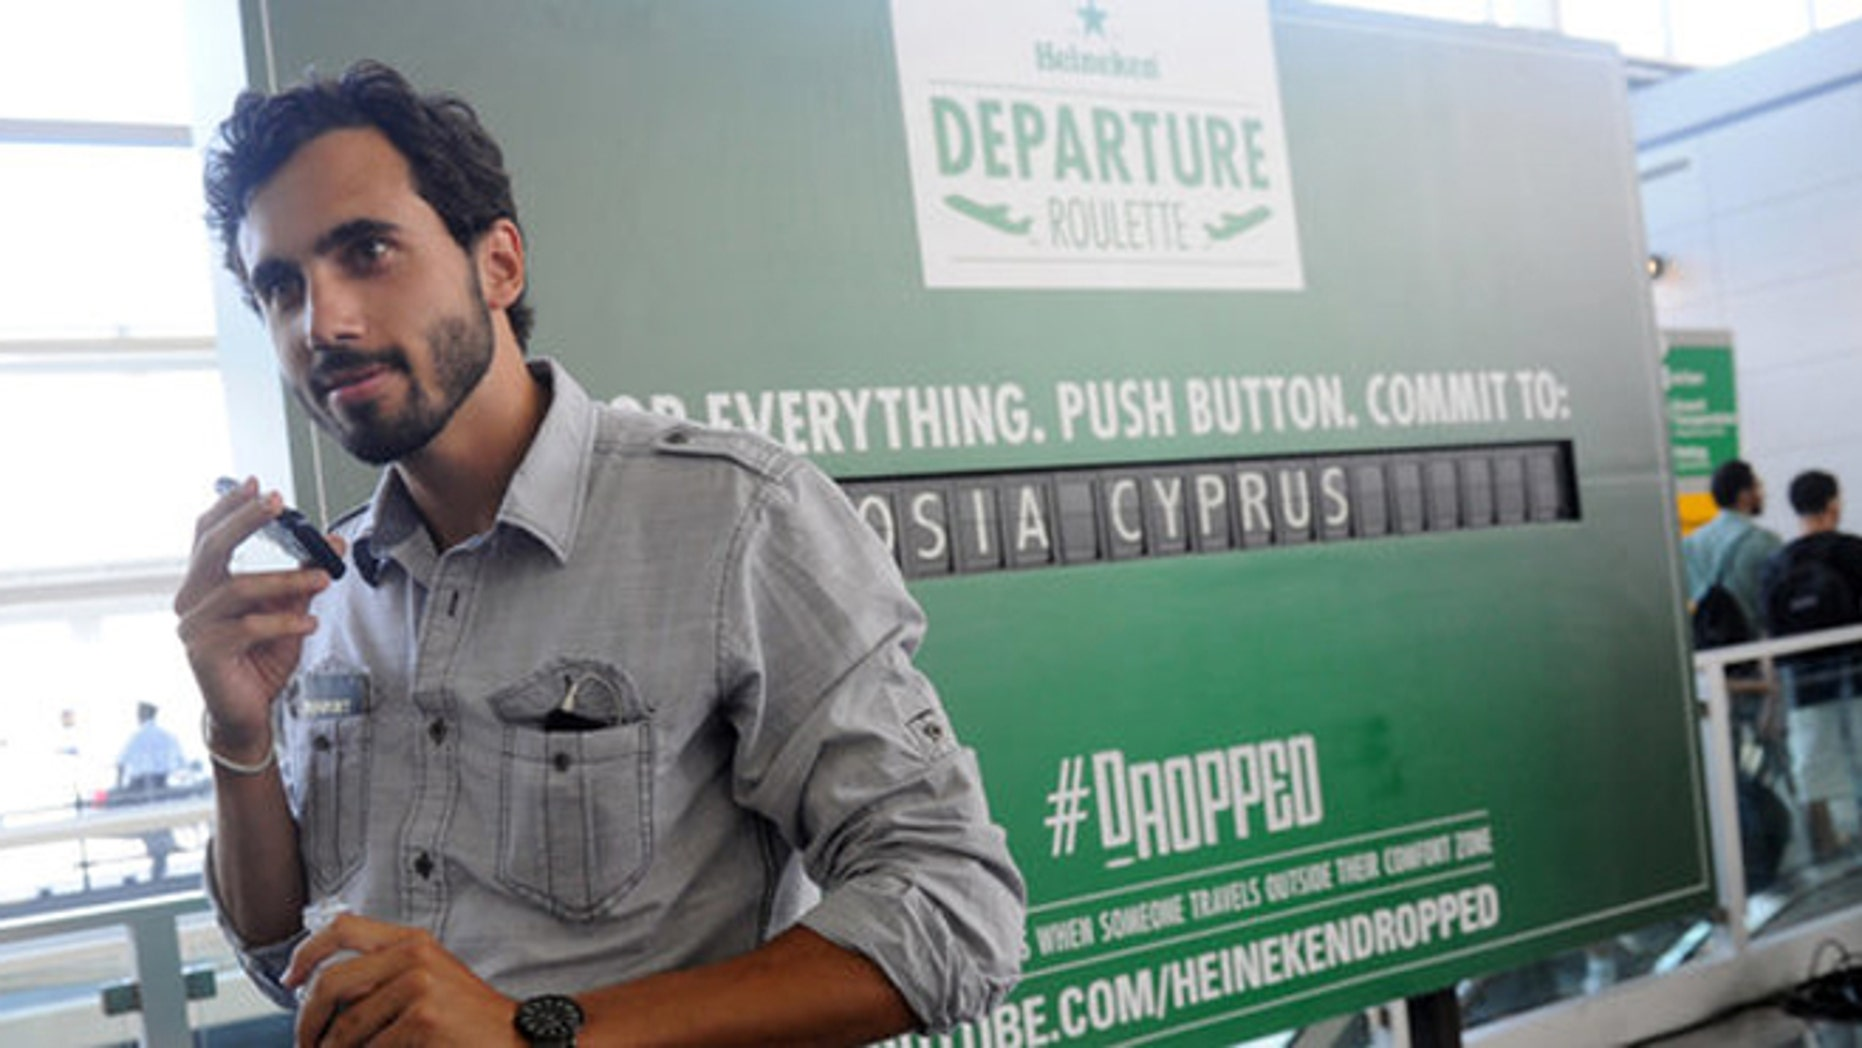 Greg Vosits, a student, delays his trip to visit grandparents in Austria after winning a trip to Cyprus from Heineken.